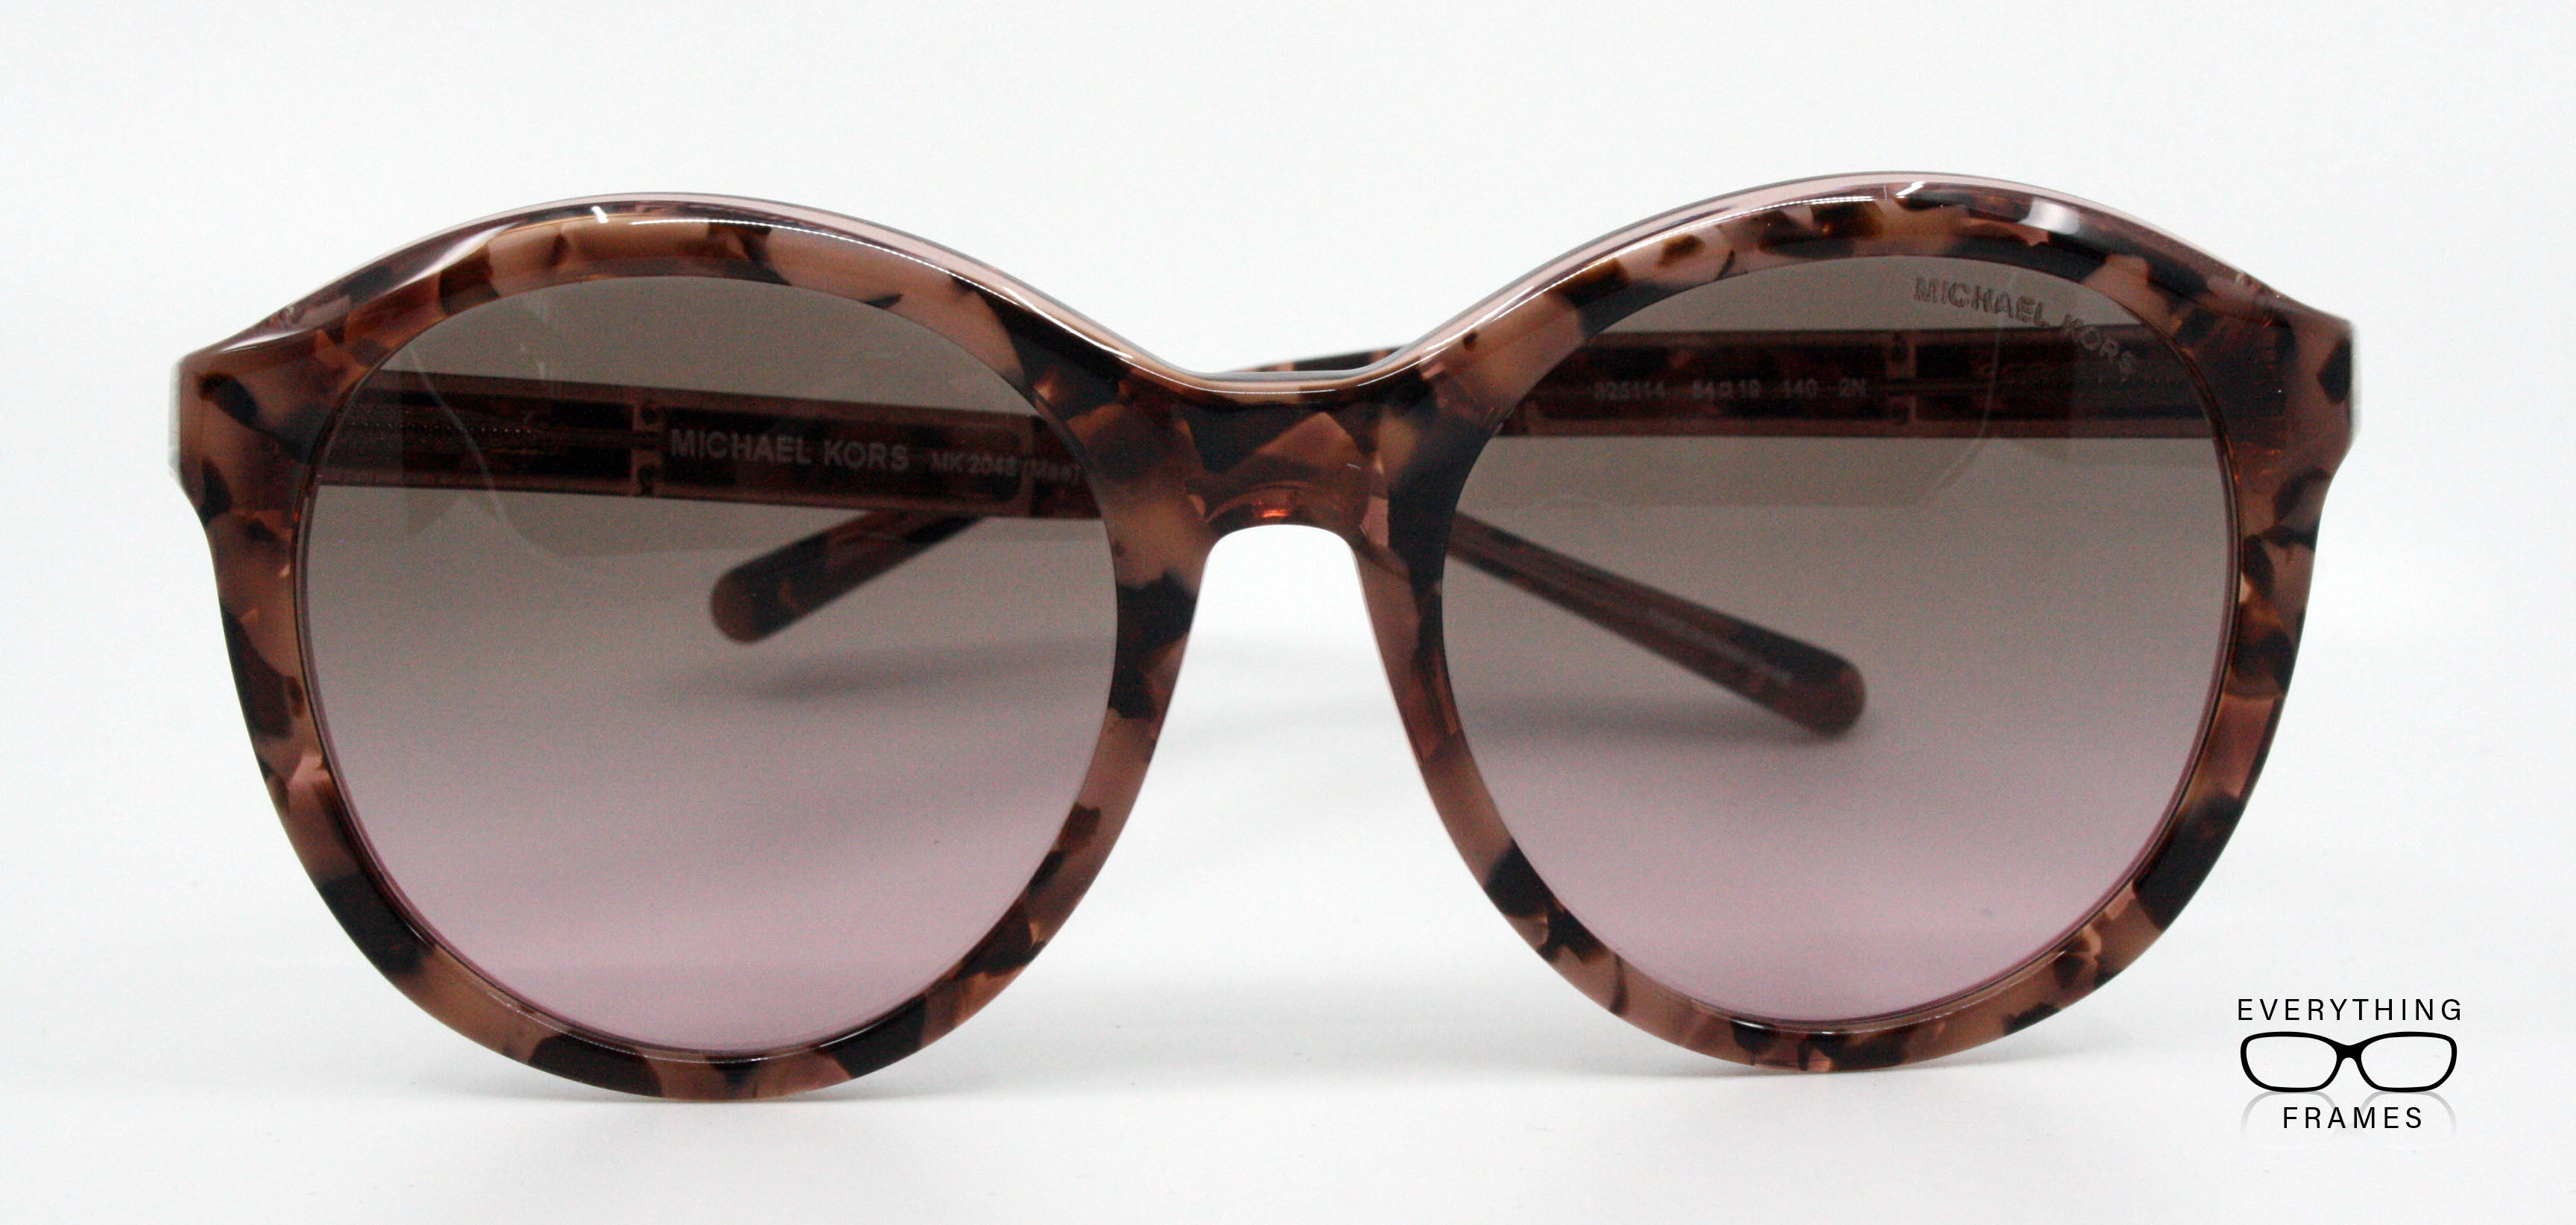 72a0946c89 Michael Kors Mae Pink Tortoise Sunglasses for Women MK2048 325114 Front View